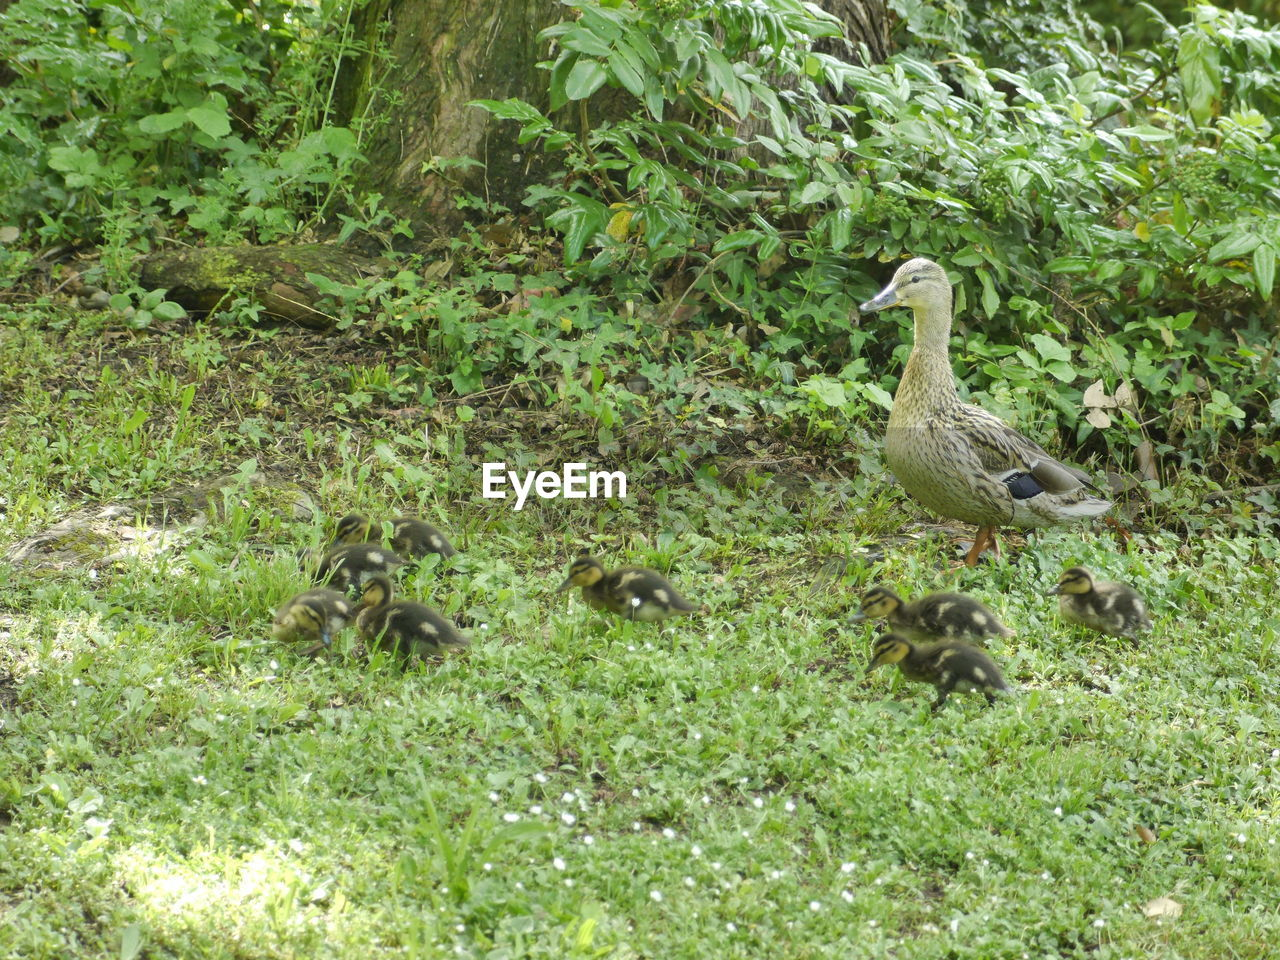 animal themes, bird, animals in the wild, young bird, young animal, gosling, animal wildlife, animal family, nature, grass, day, no people, goose, outdoors, green color, duckling, growth, togetherness